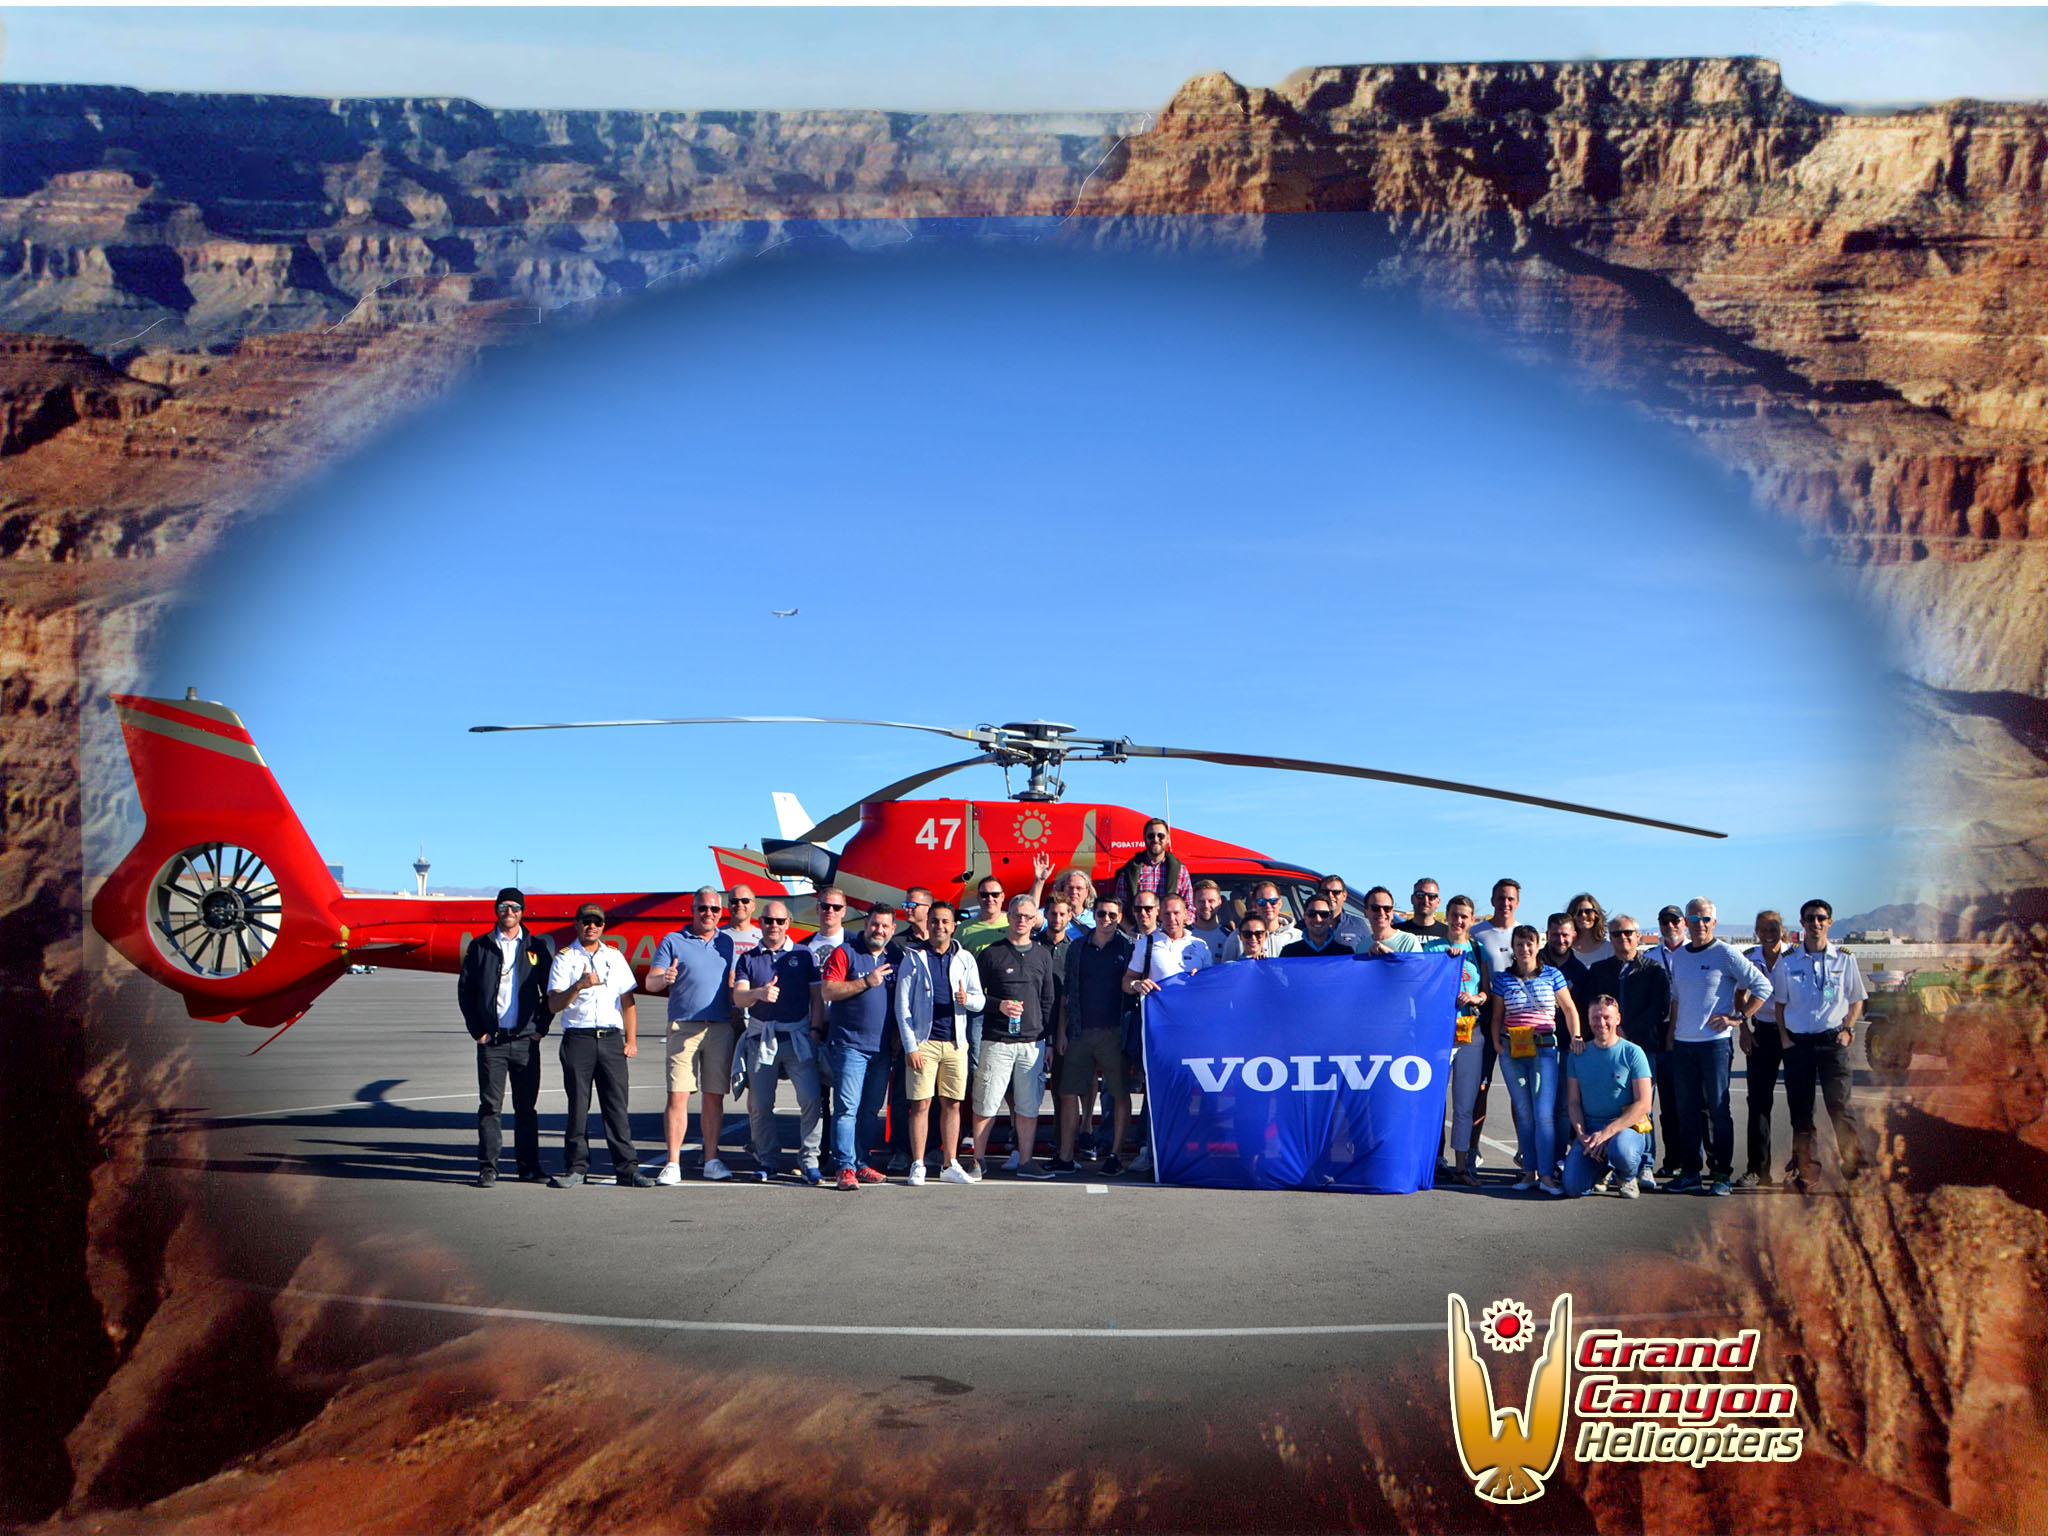 Volvo Heli group Photo